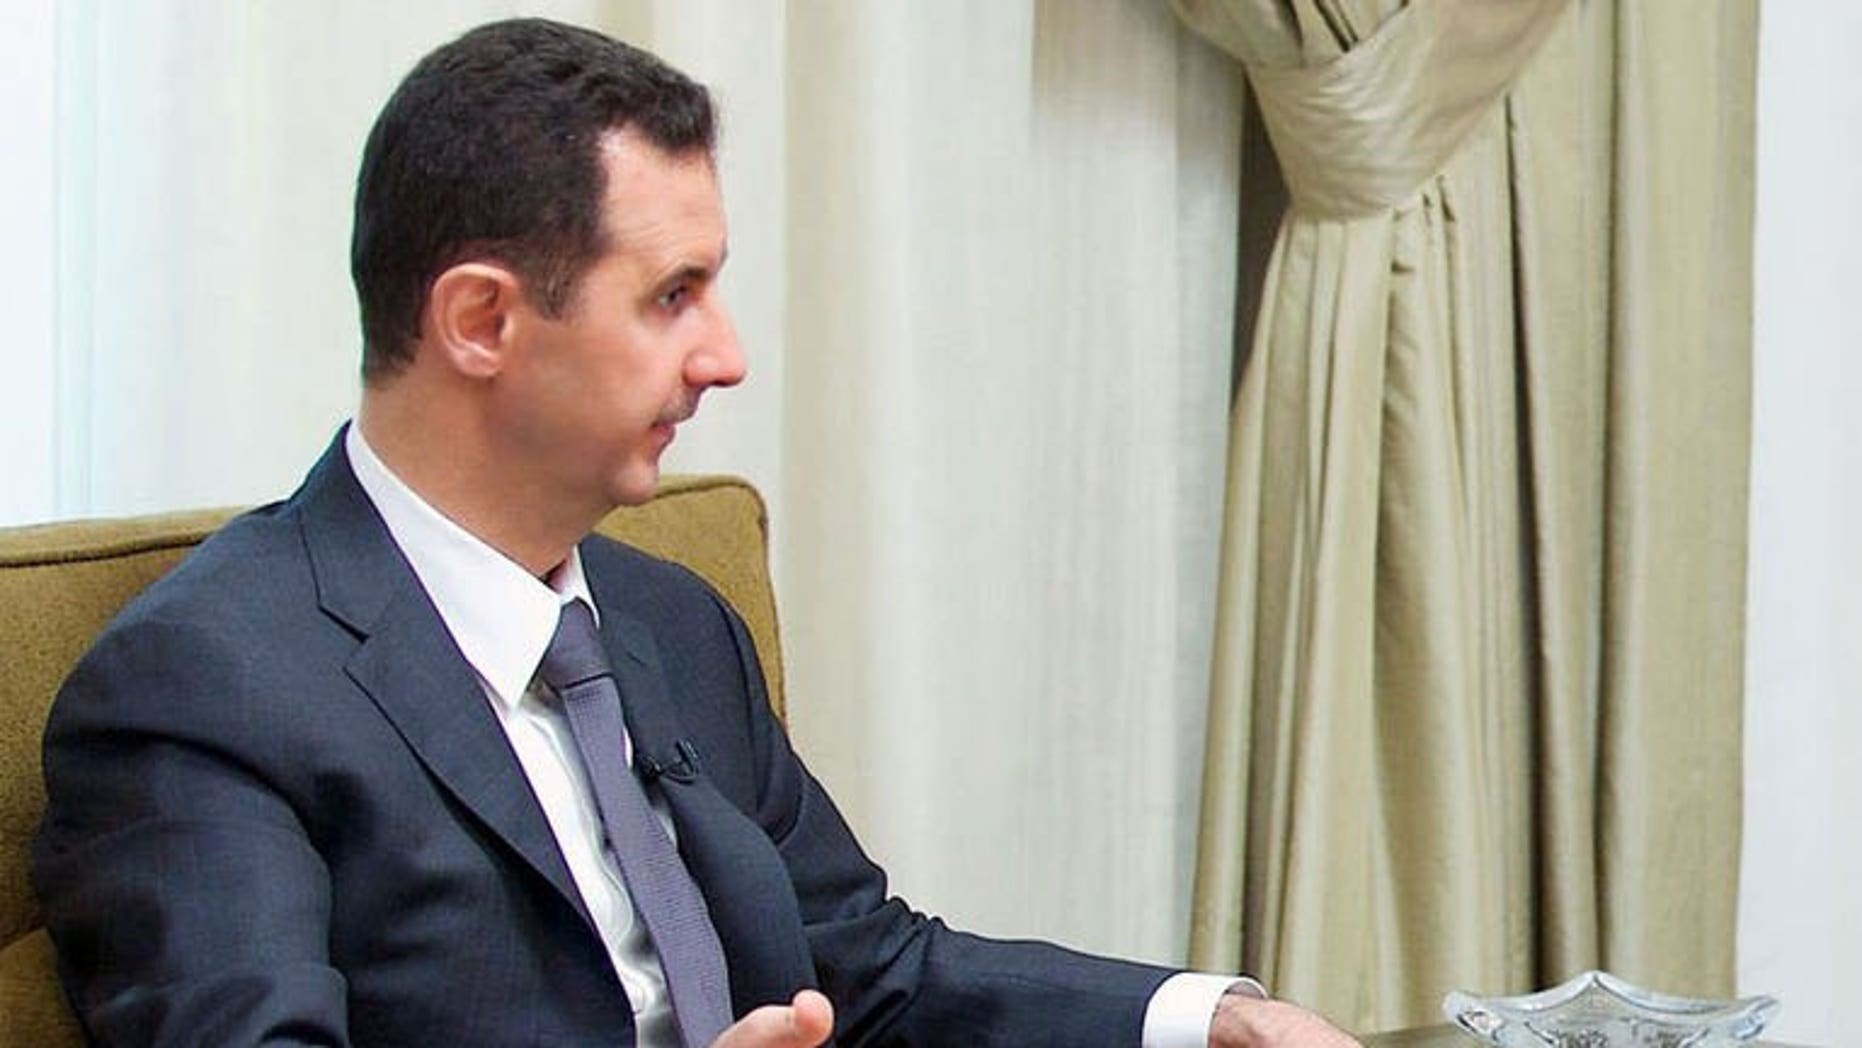 """A handout picture released by the Syrian Arab News Agency (SANA) shows President Bashar al-Assad giving an interview to a local newspaper in Damascus, on July 2, 2013. Assad has accused the West of sending """"takfiri terrorist groups"""" to his country as a way to get rid of them, in an interview with a Syrian daily."""